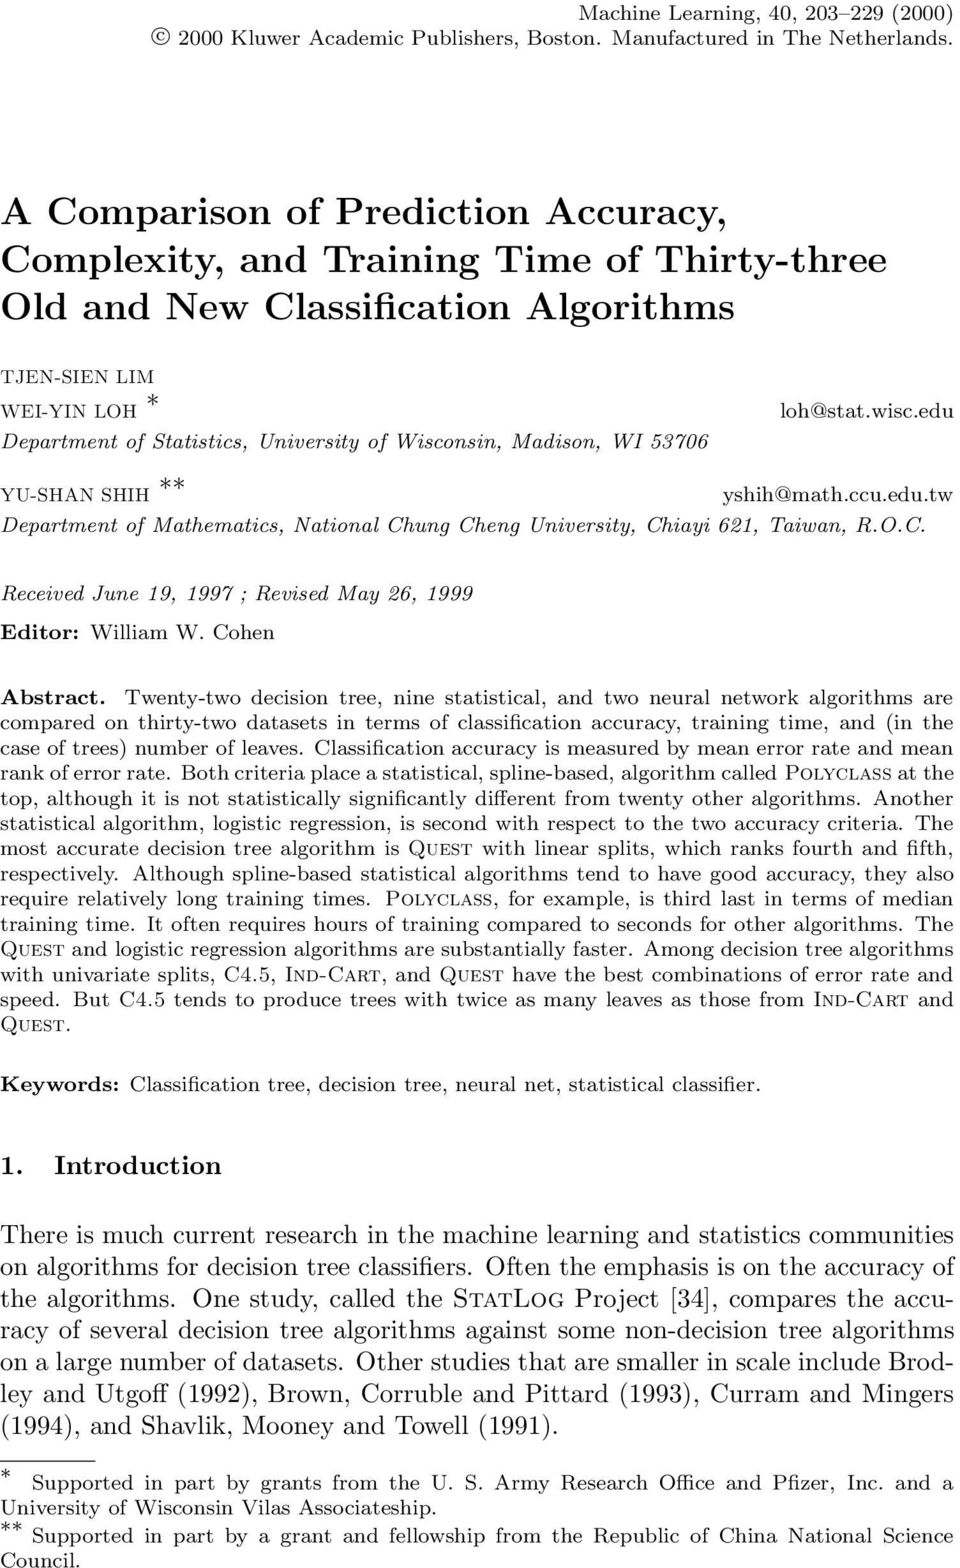 Madison, WI 53706 loh@stat.wisc.edu YU-SHAN SHIH ** yshih@math.ccu.edu.tw Department of Mathematics, National Chung Cheng University, Chiayi 621, Taiwan, R.O.C. Received June 19, 1997 ; Revised May 26, 1999 Editor: William W.